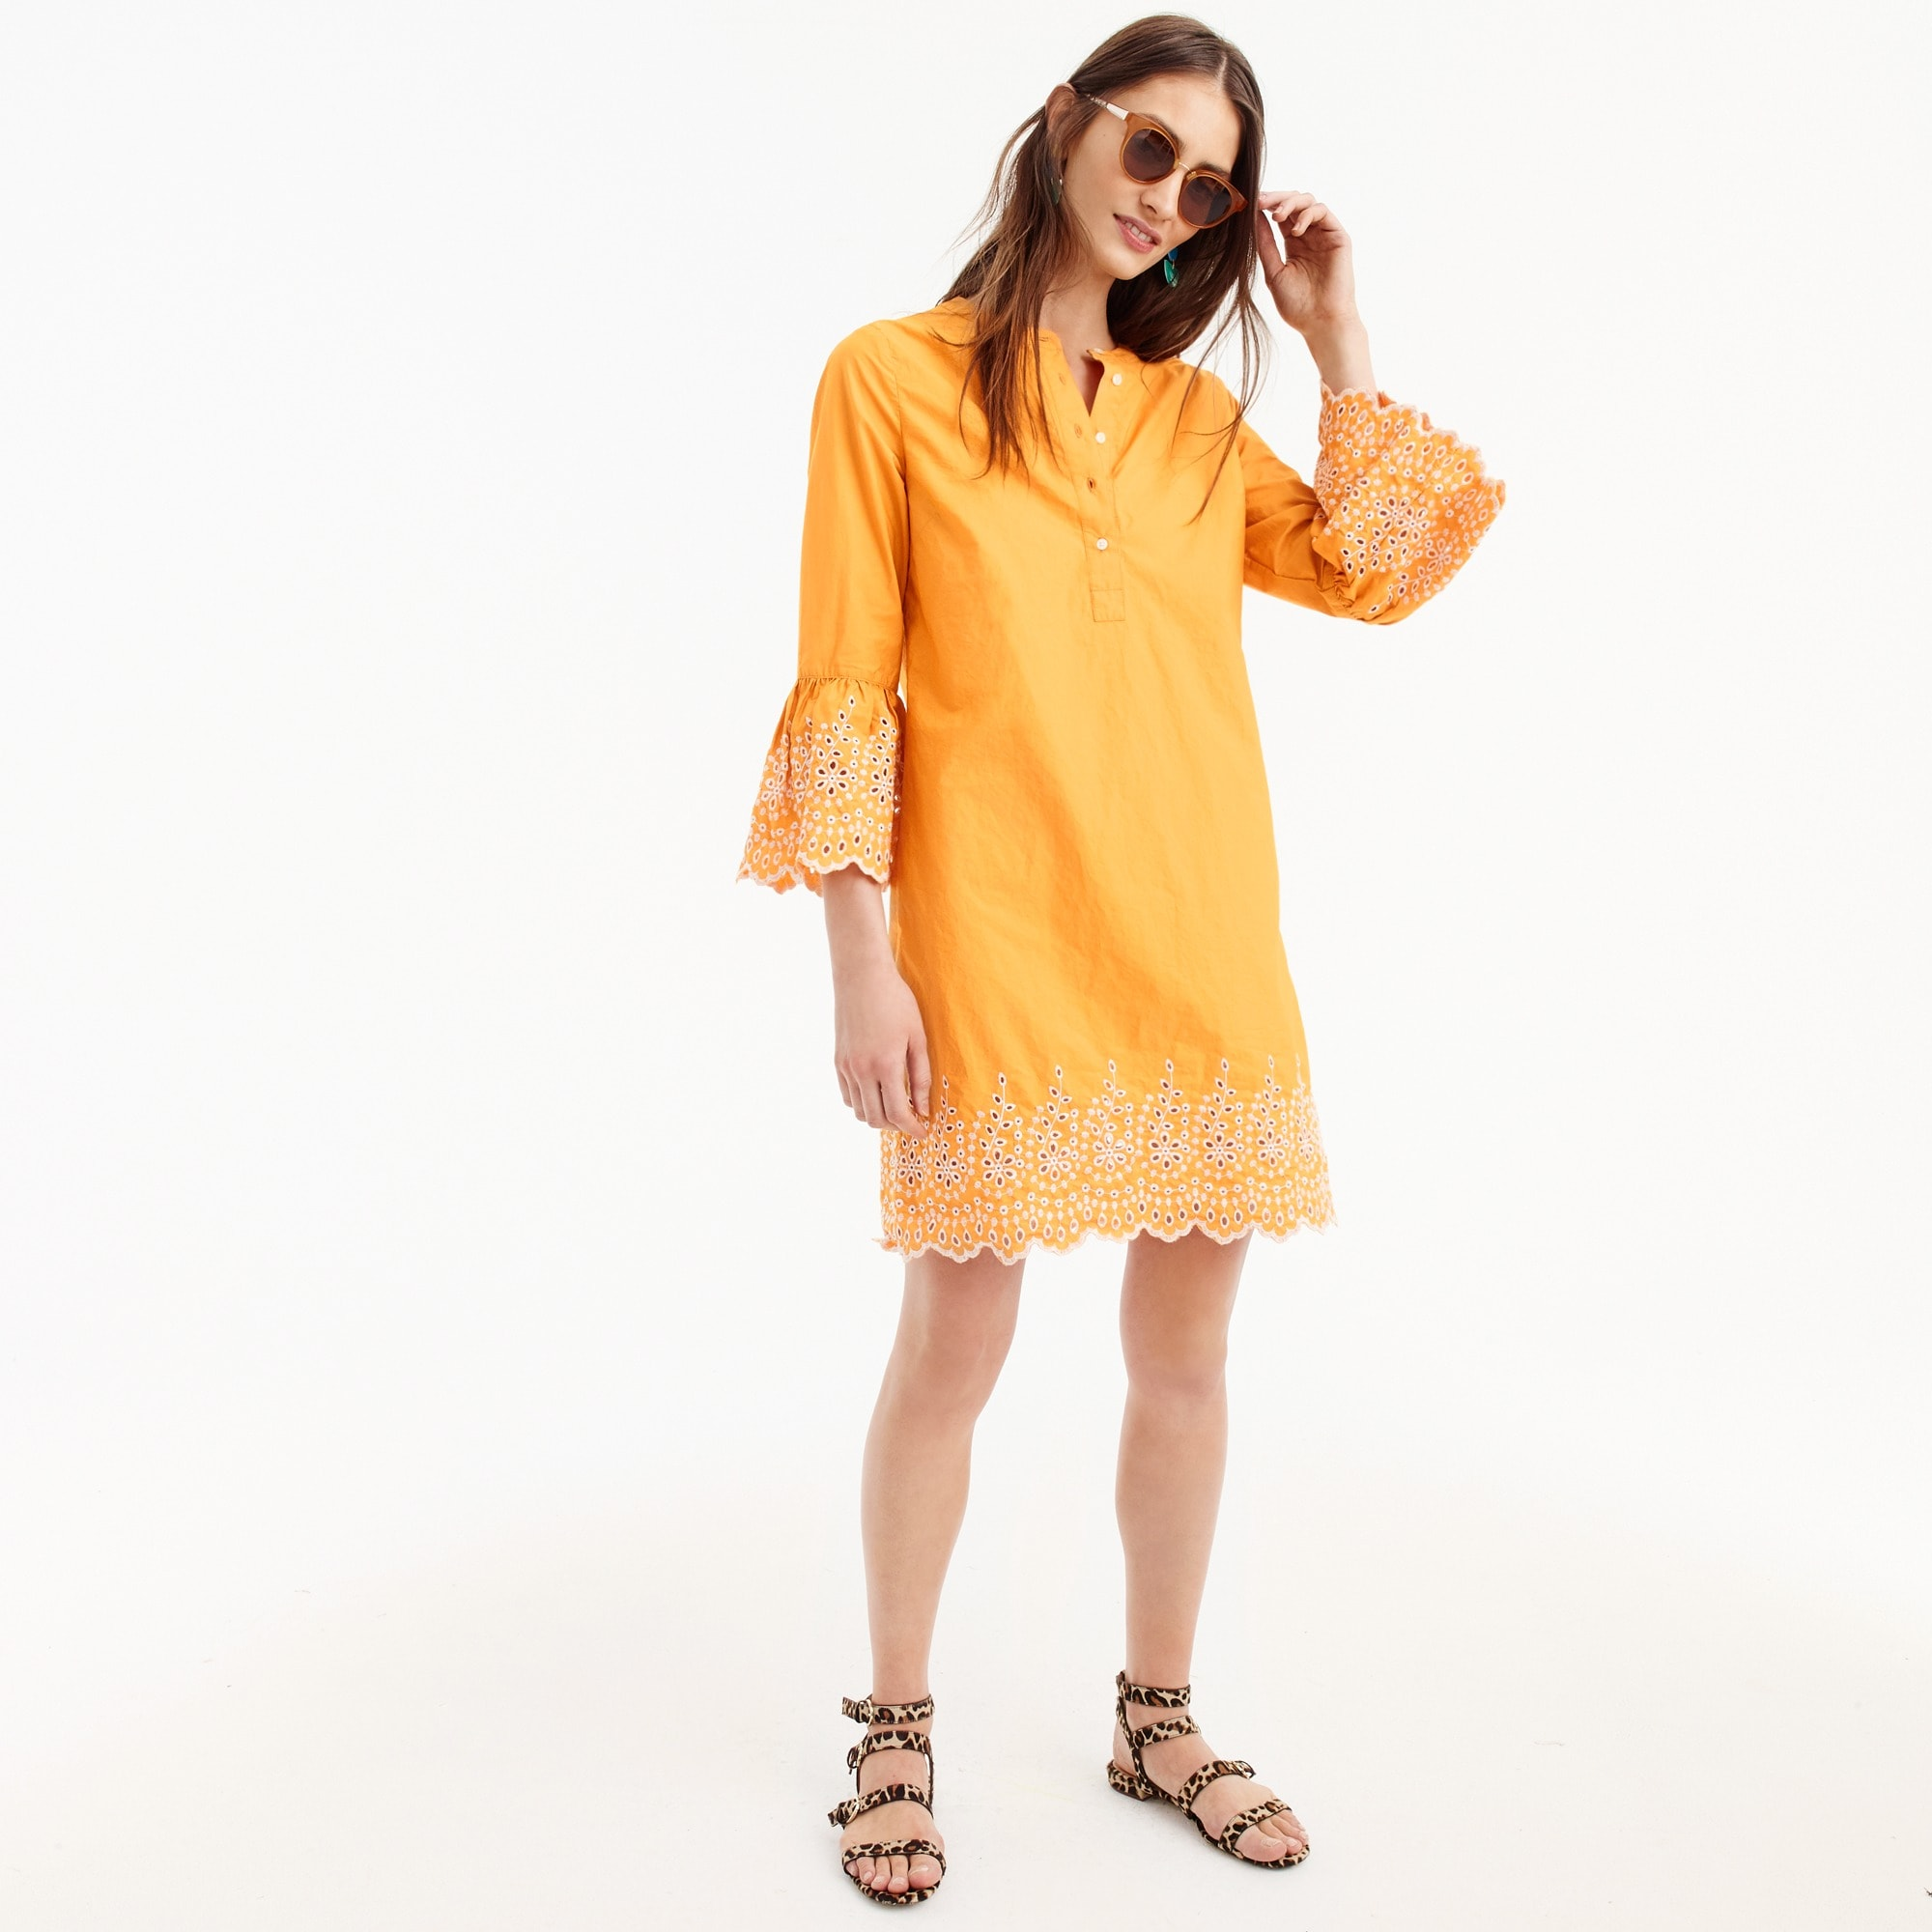 Embroidered bell-sleeve dress women dresses c